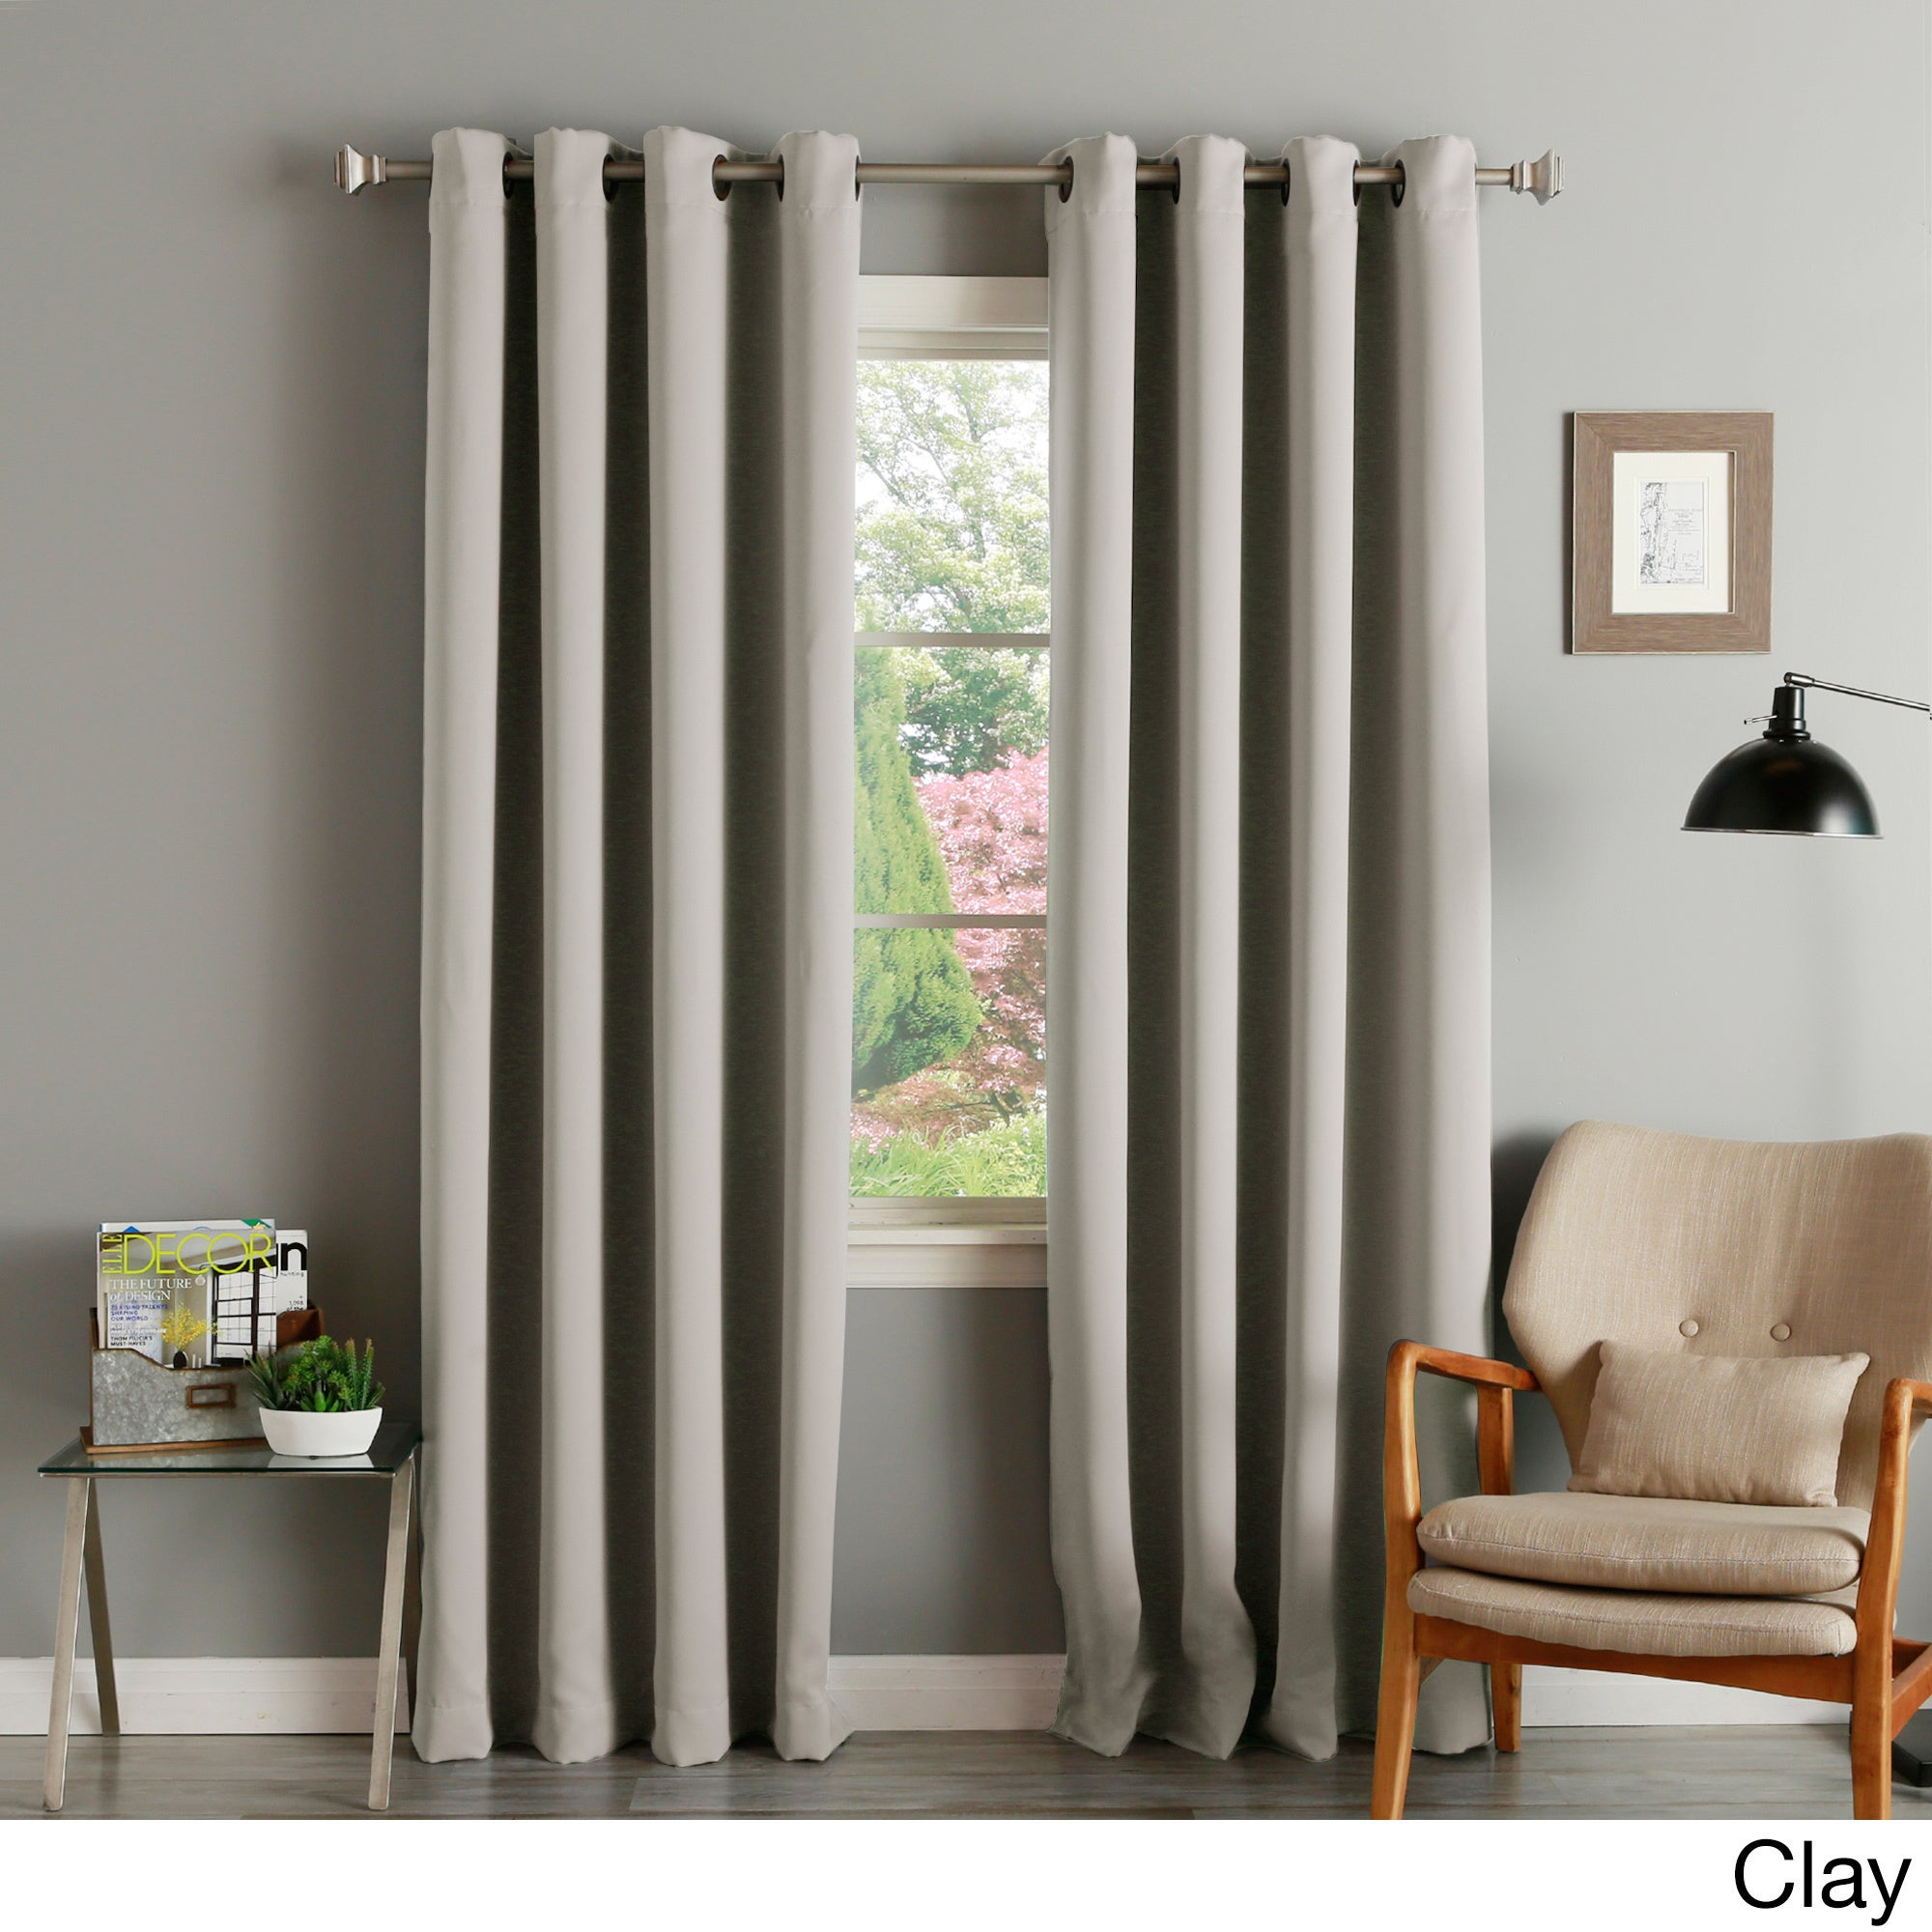 Aurora Home Thermal Insulated Blackout Grommet Top Curtain Panel Pair Intended For Blackout Grommet Curtain Panels (View 9 of 20)